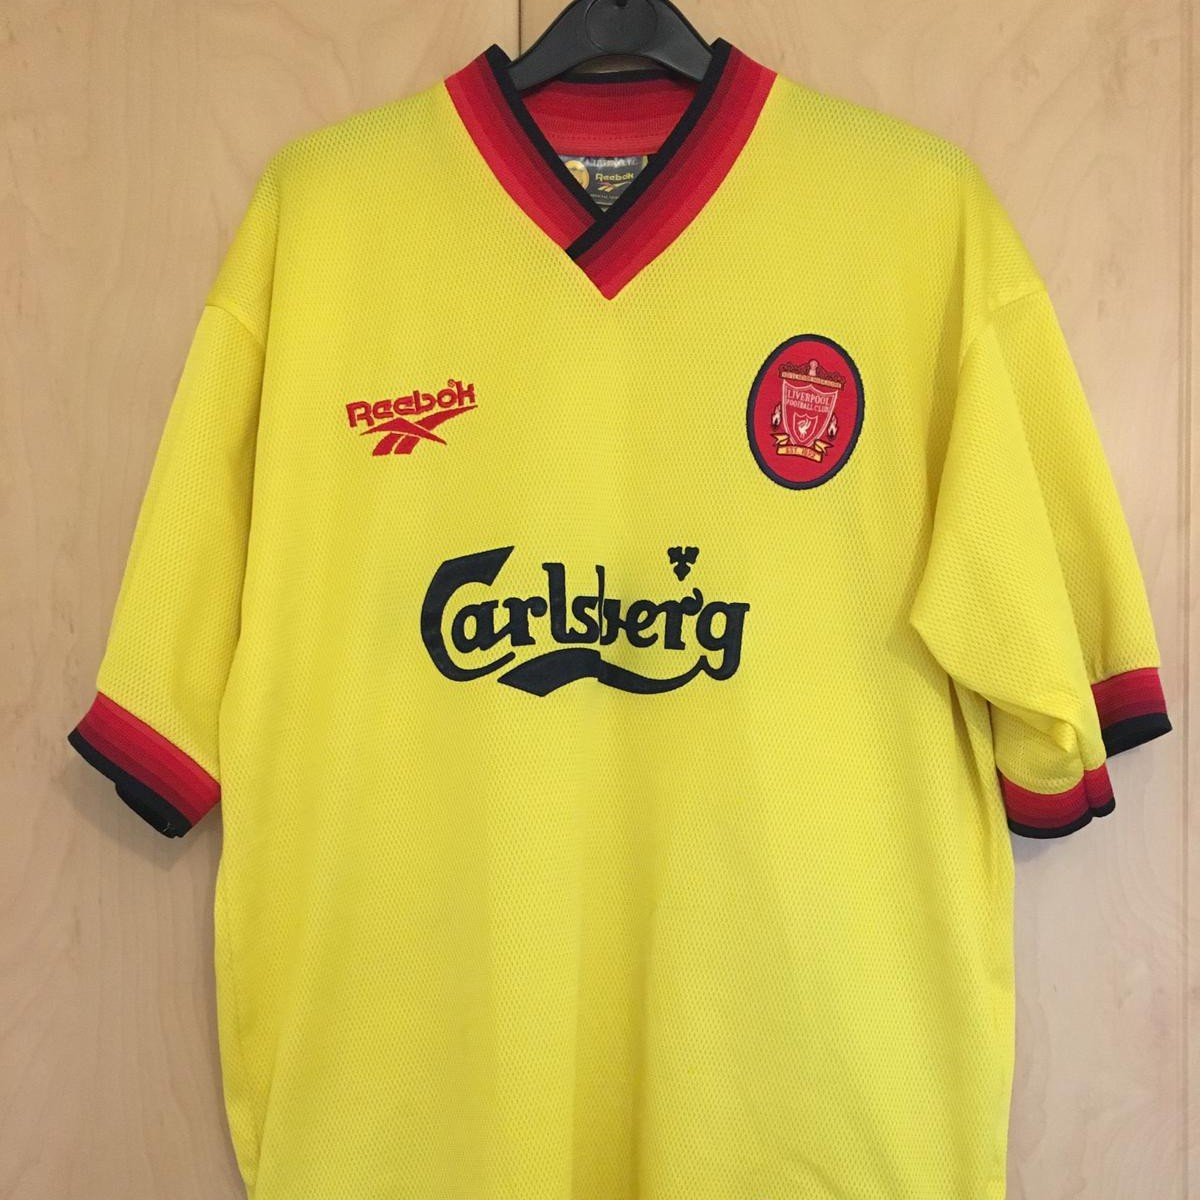 the best attitude 22397 9c071 Liverpool Football Club Away Kit 1997/1998 This... - Depop